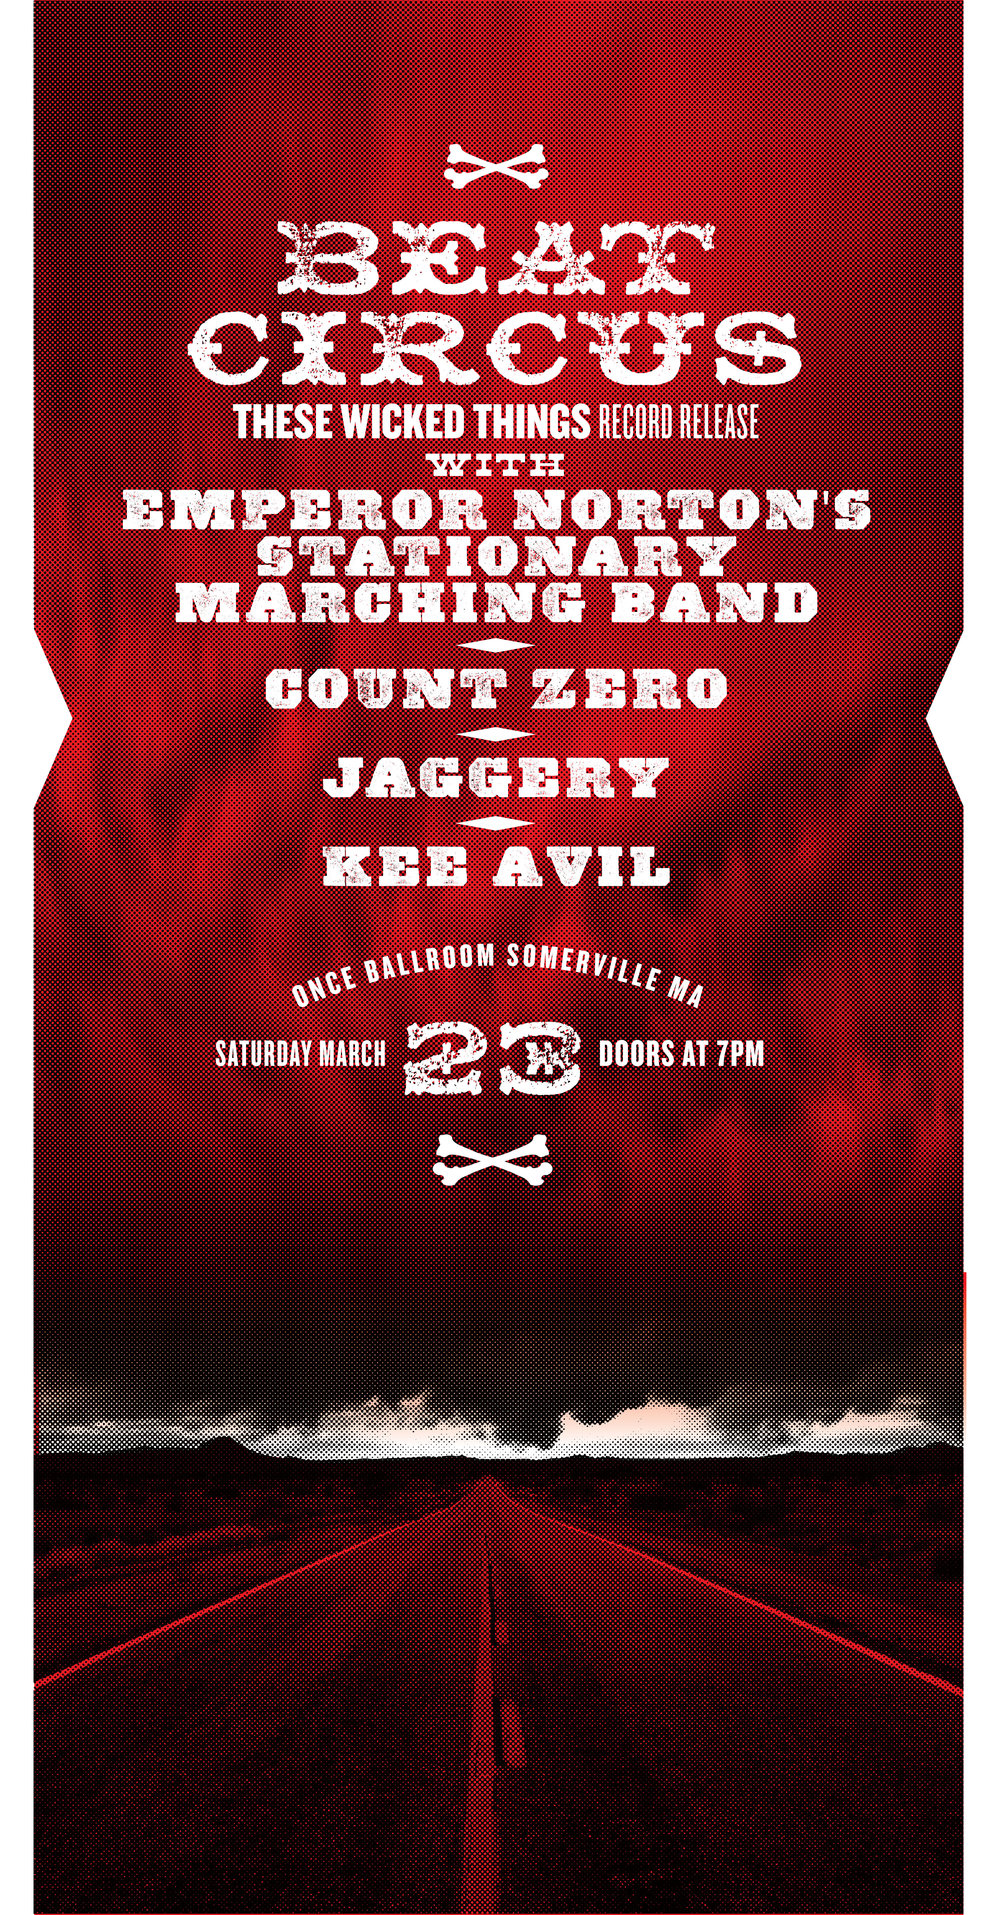 MARCH 23 2019 ONCE BALLROOM SOMERVILLE MA w/COUNT ZERO, JAGGERY, EMPEROR NORTON, KEE AVIL. BY LURE DESIGN